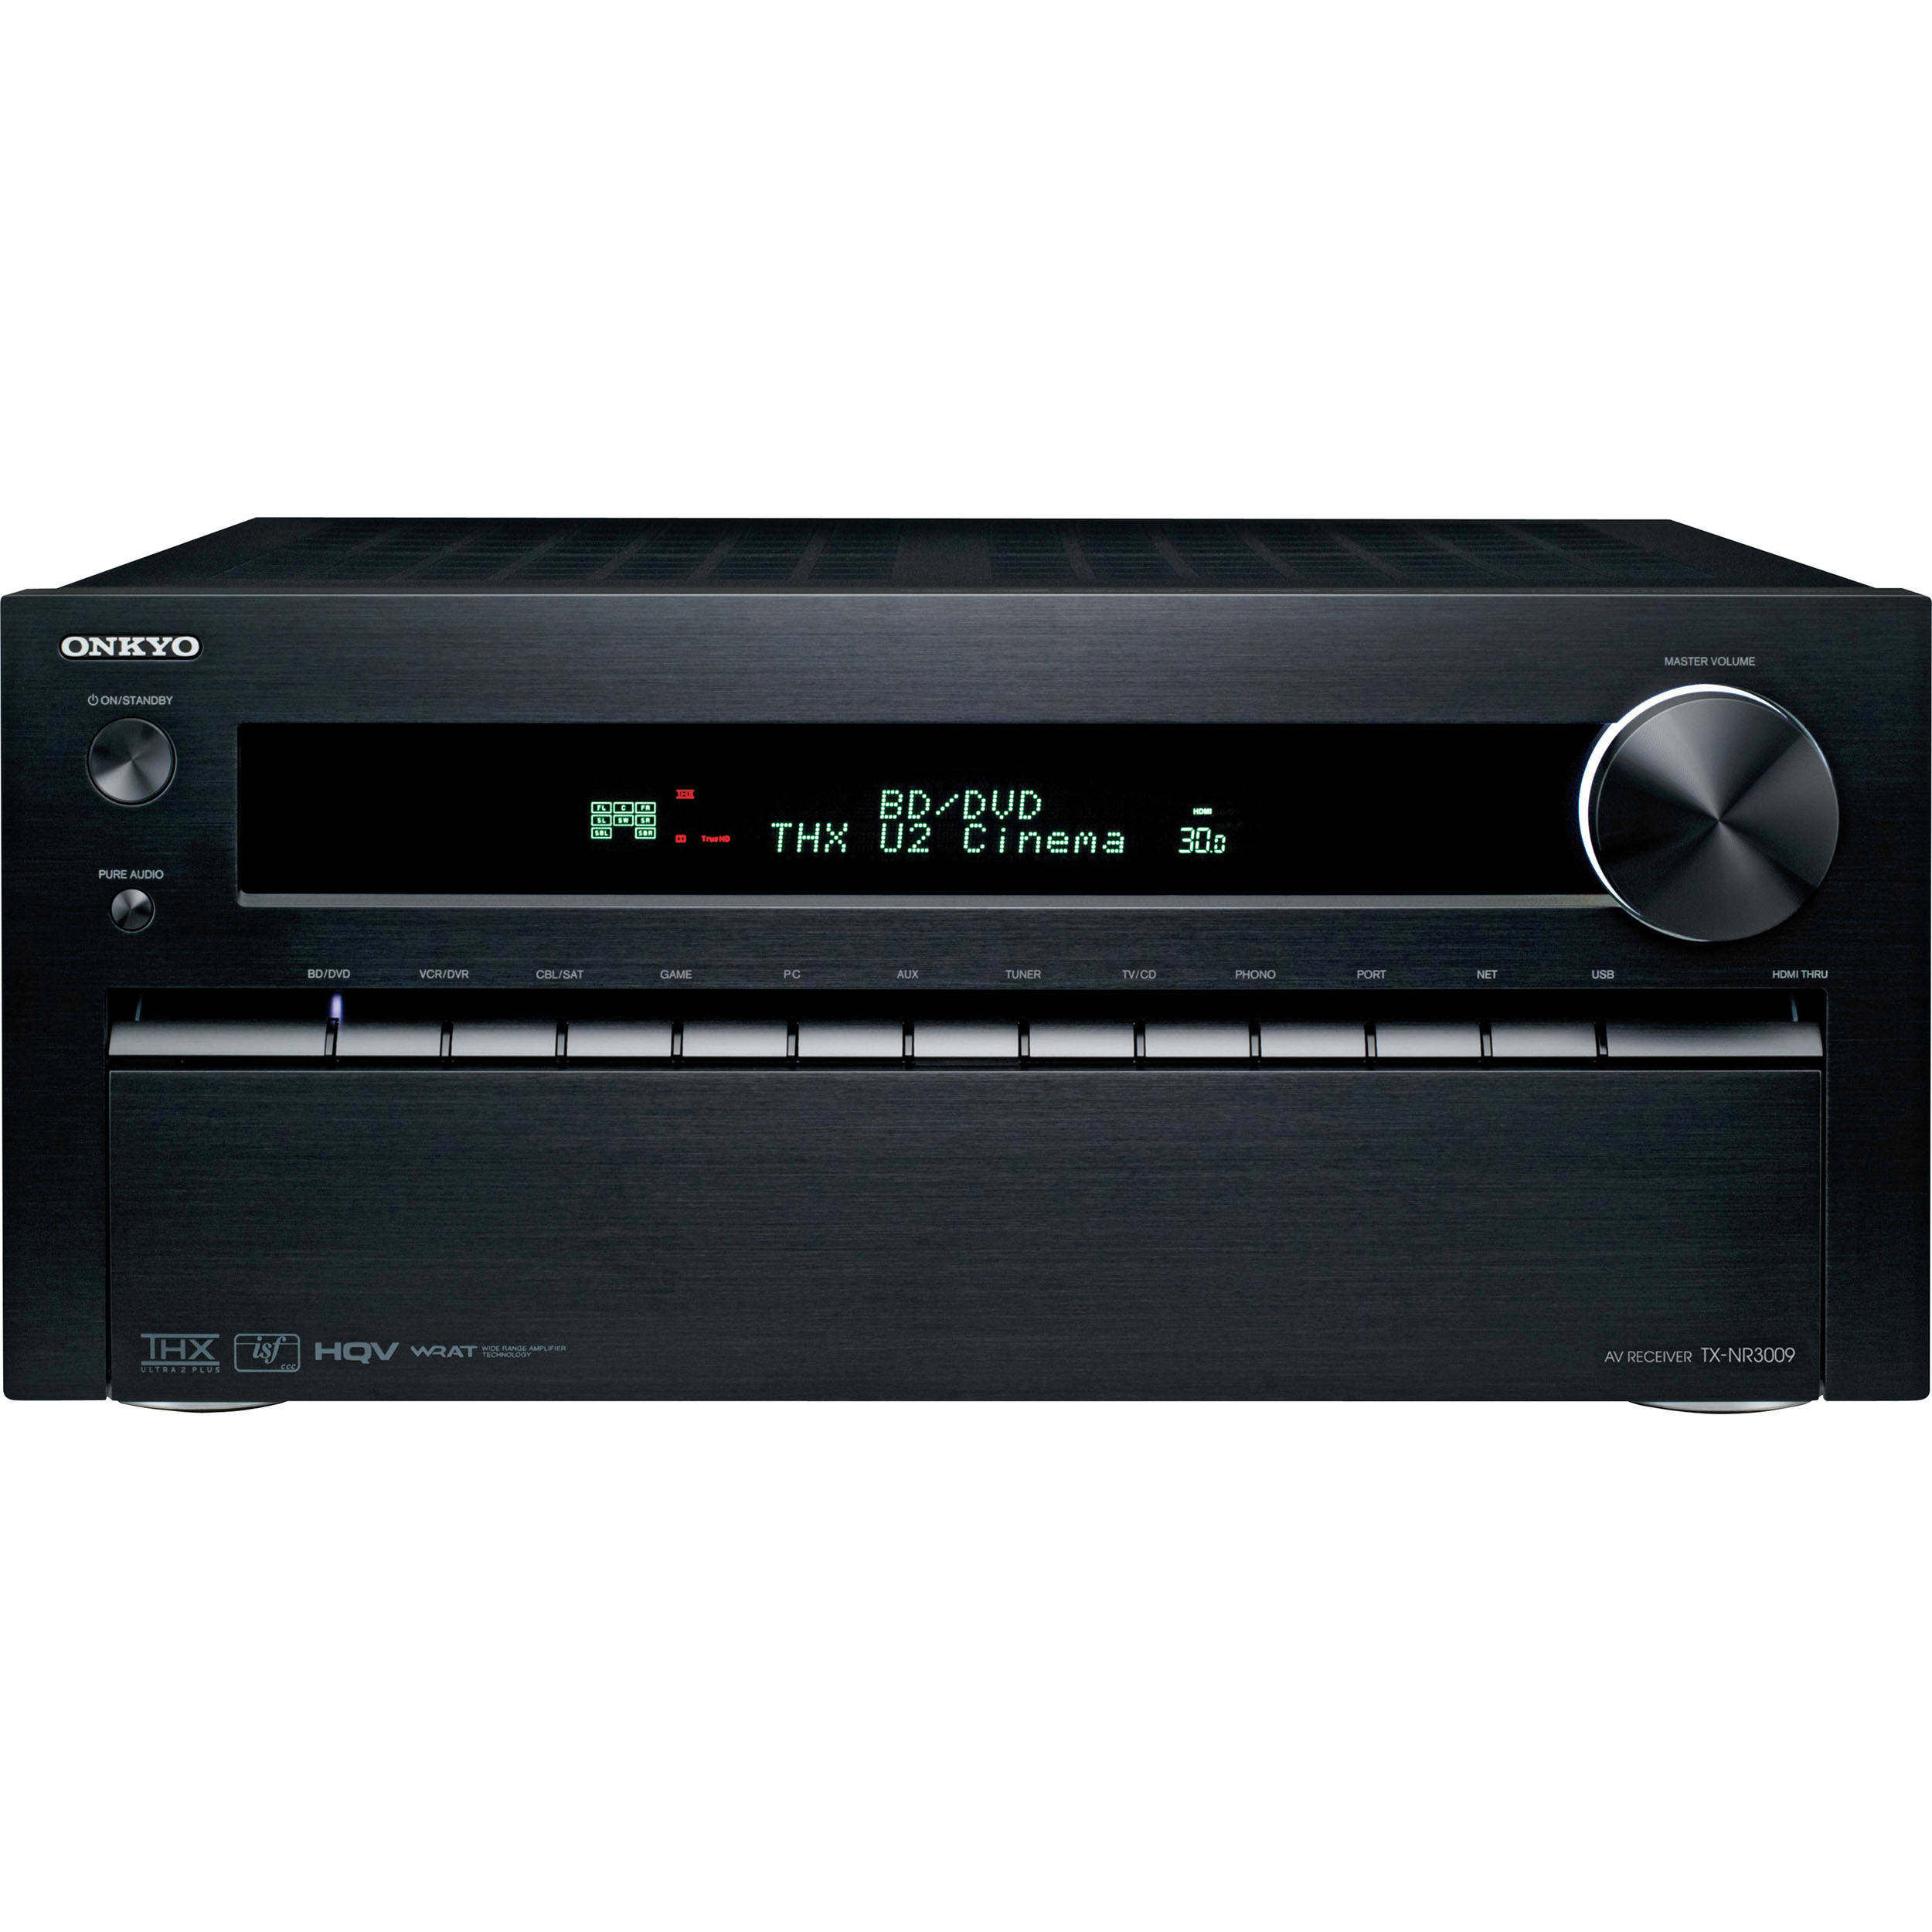 Onkyo TX-NR3009 Network A/V Receiver Download Drivers